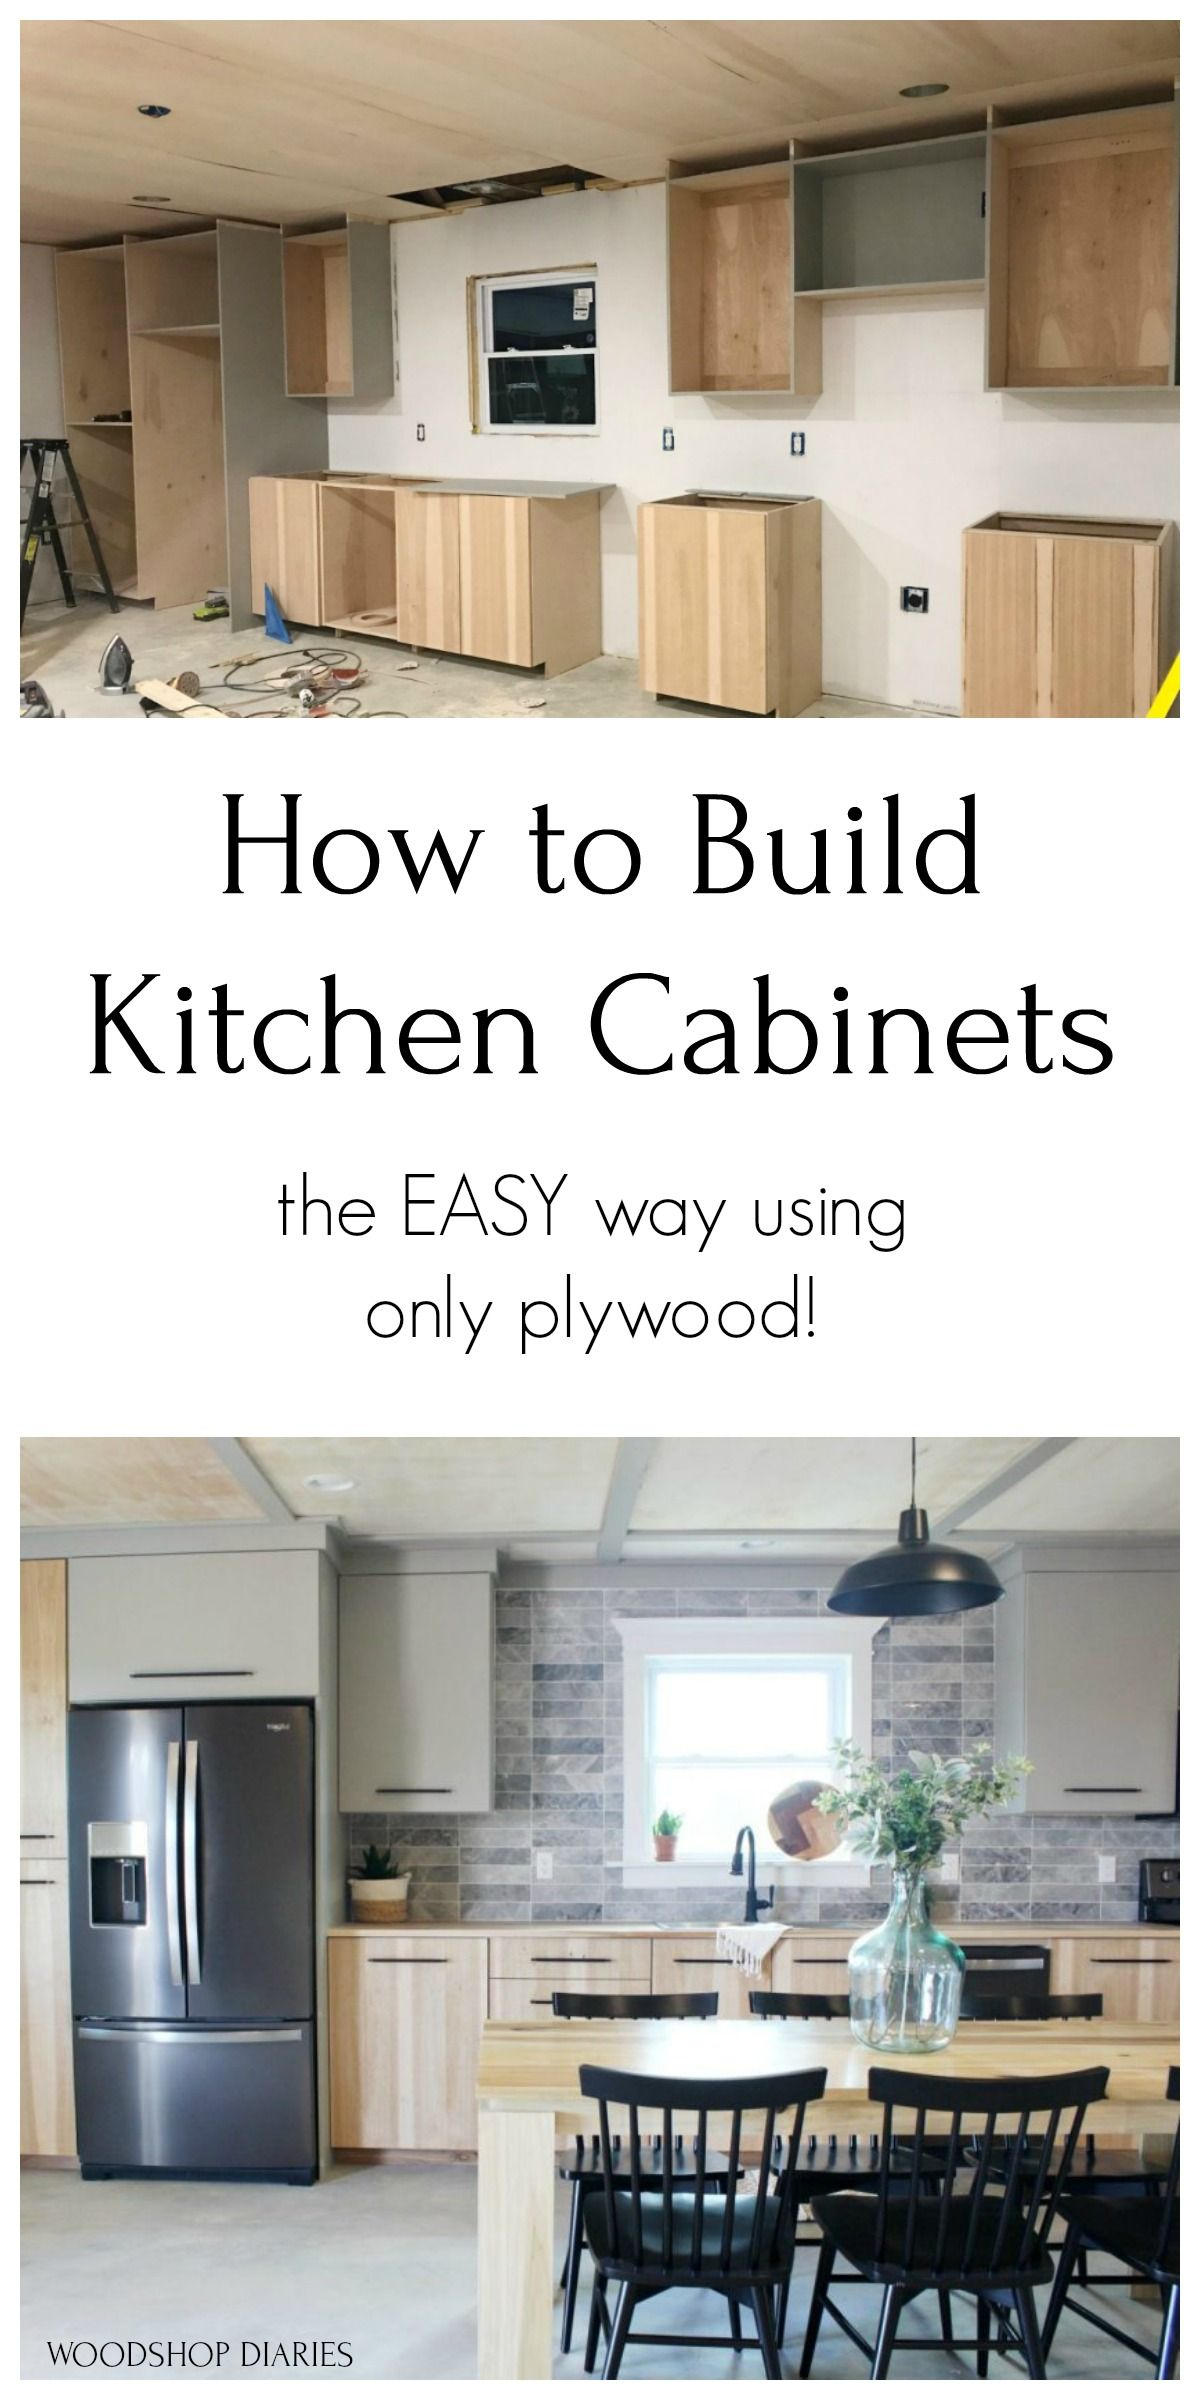 Diy Kitchen Cabinets Made From Only Plywood In 2020 Building